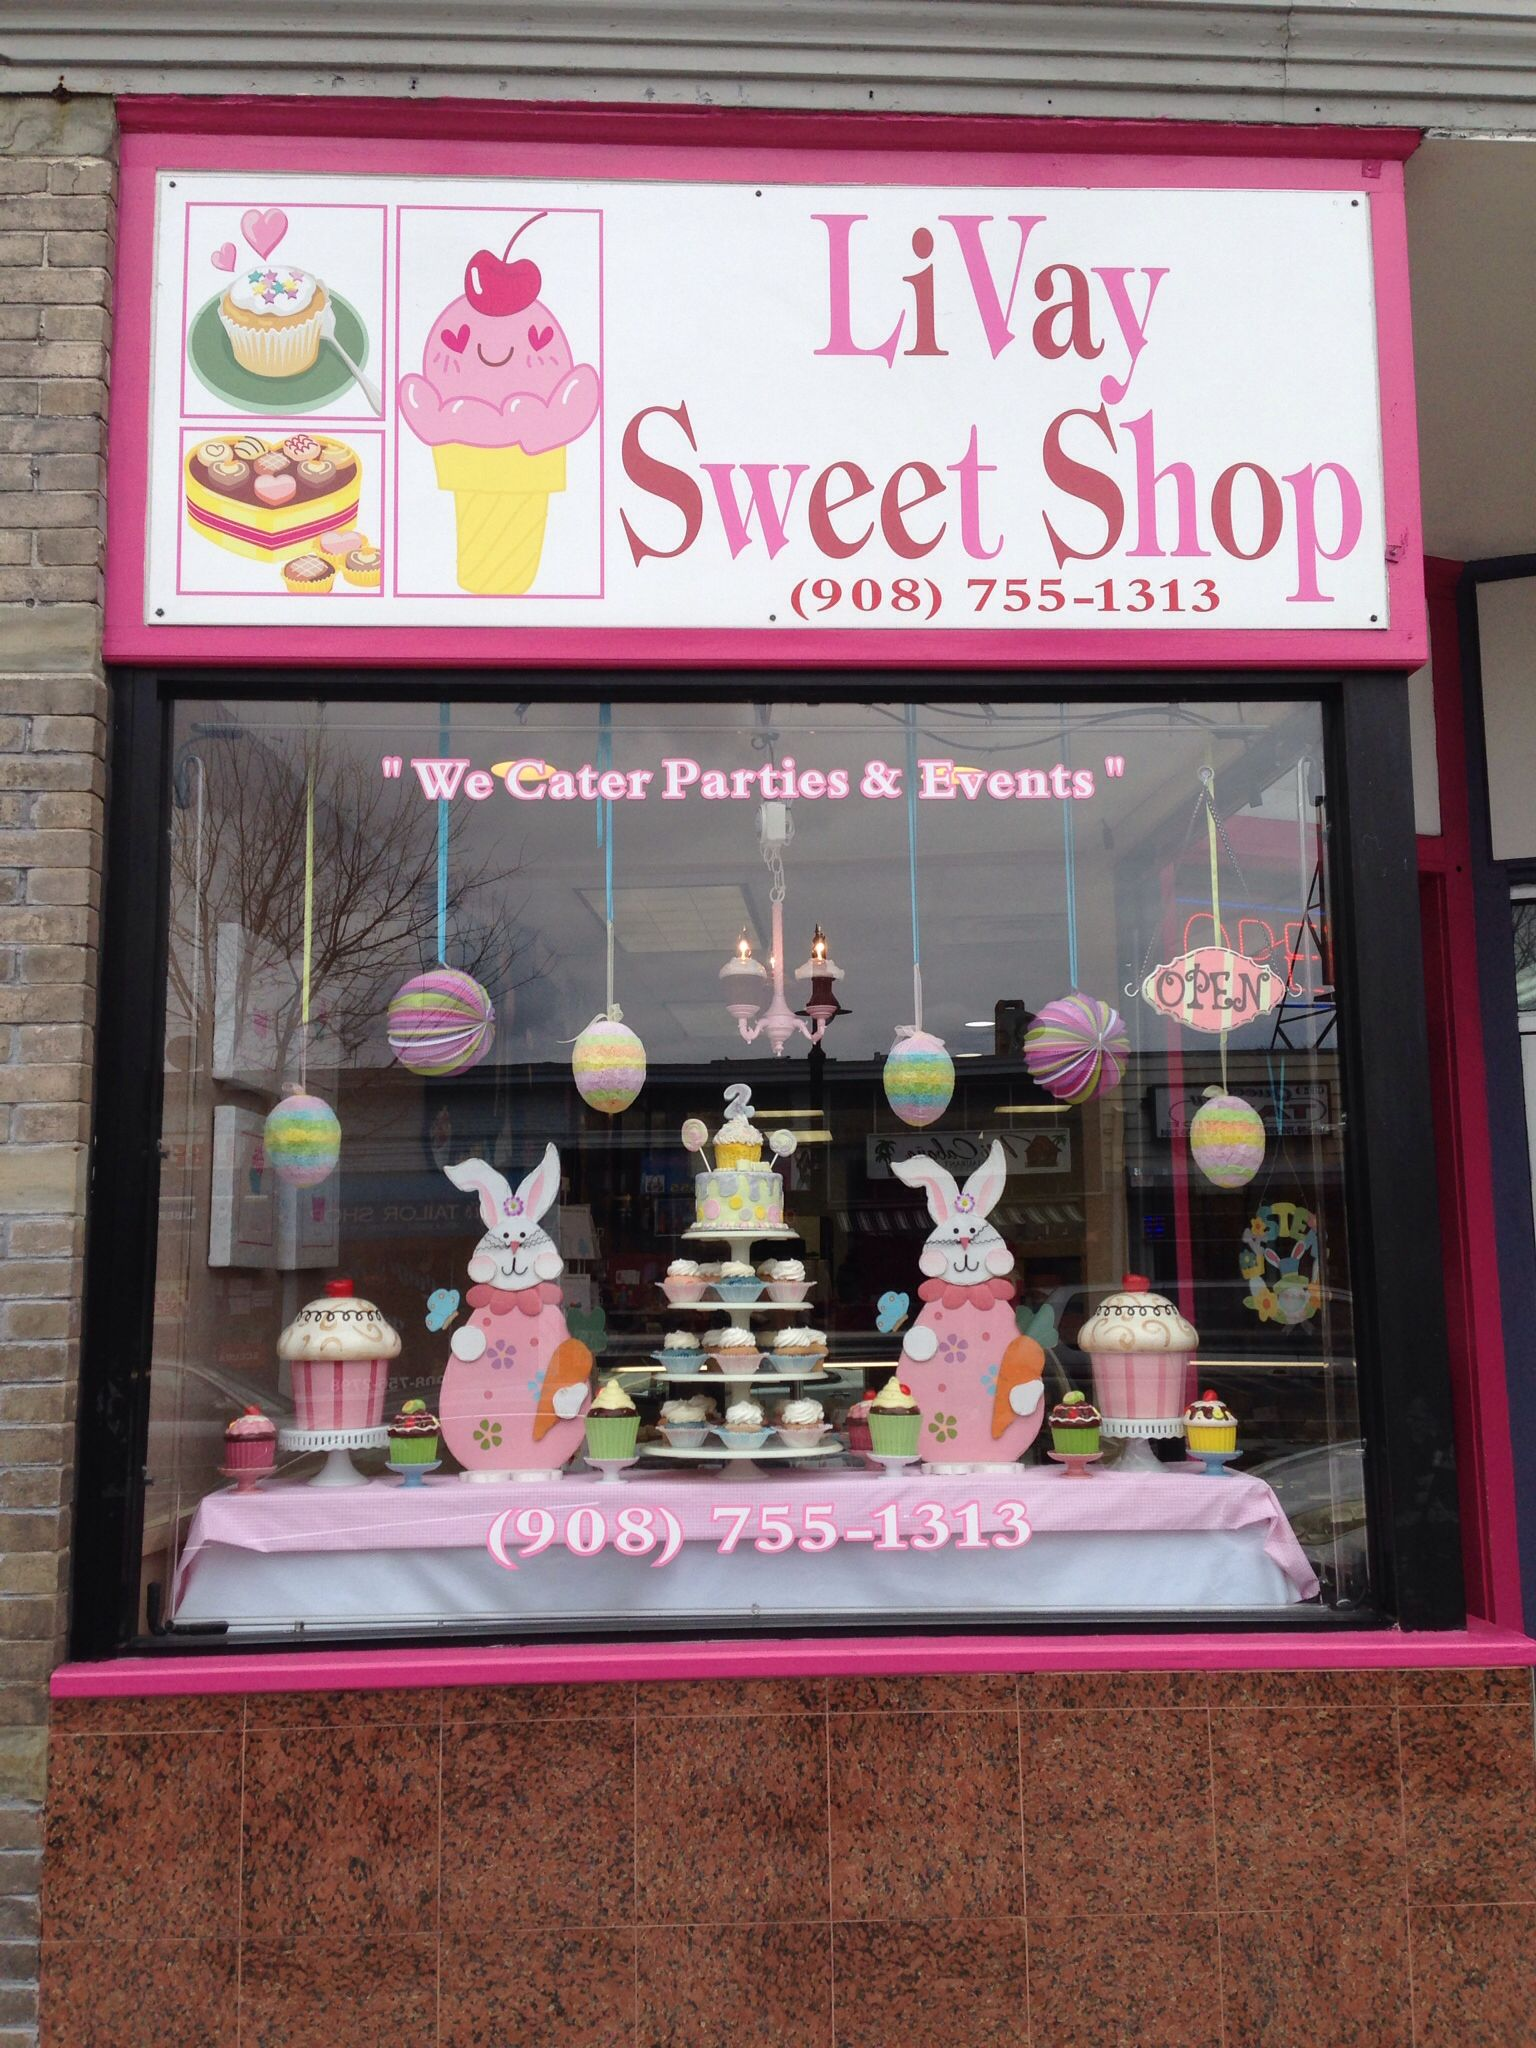 Easter window display 2014 livay sweet shop for Bakery decoration